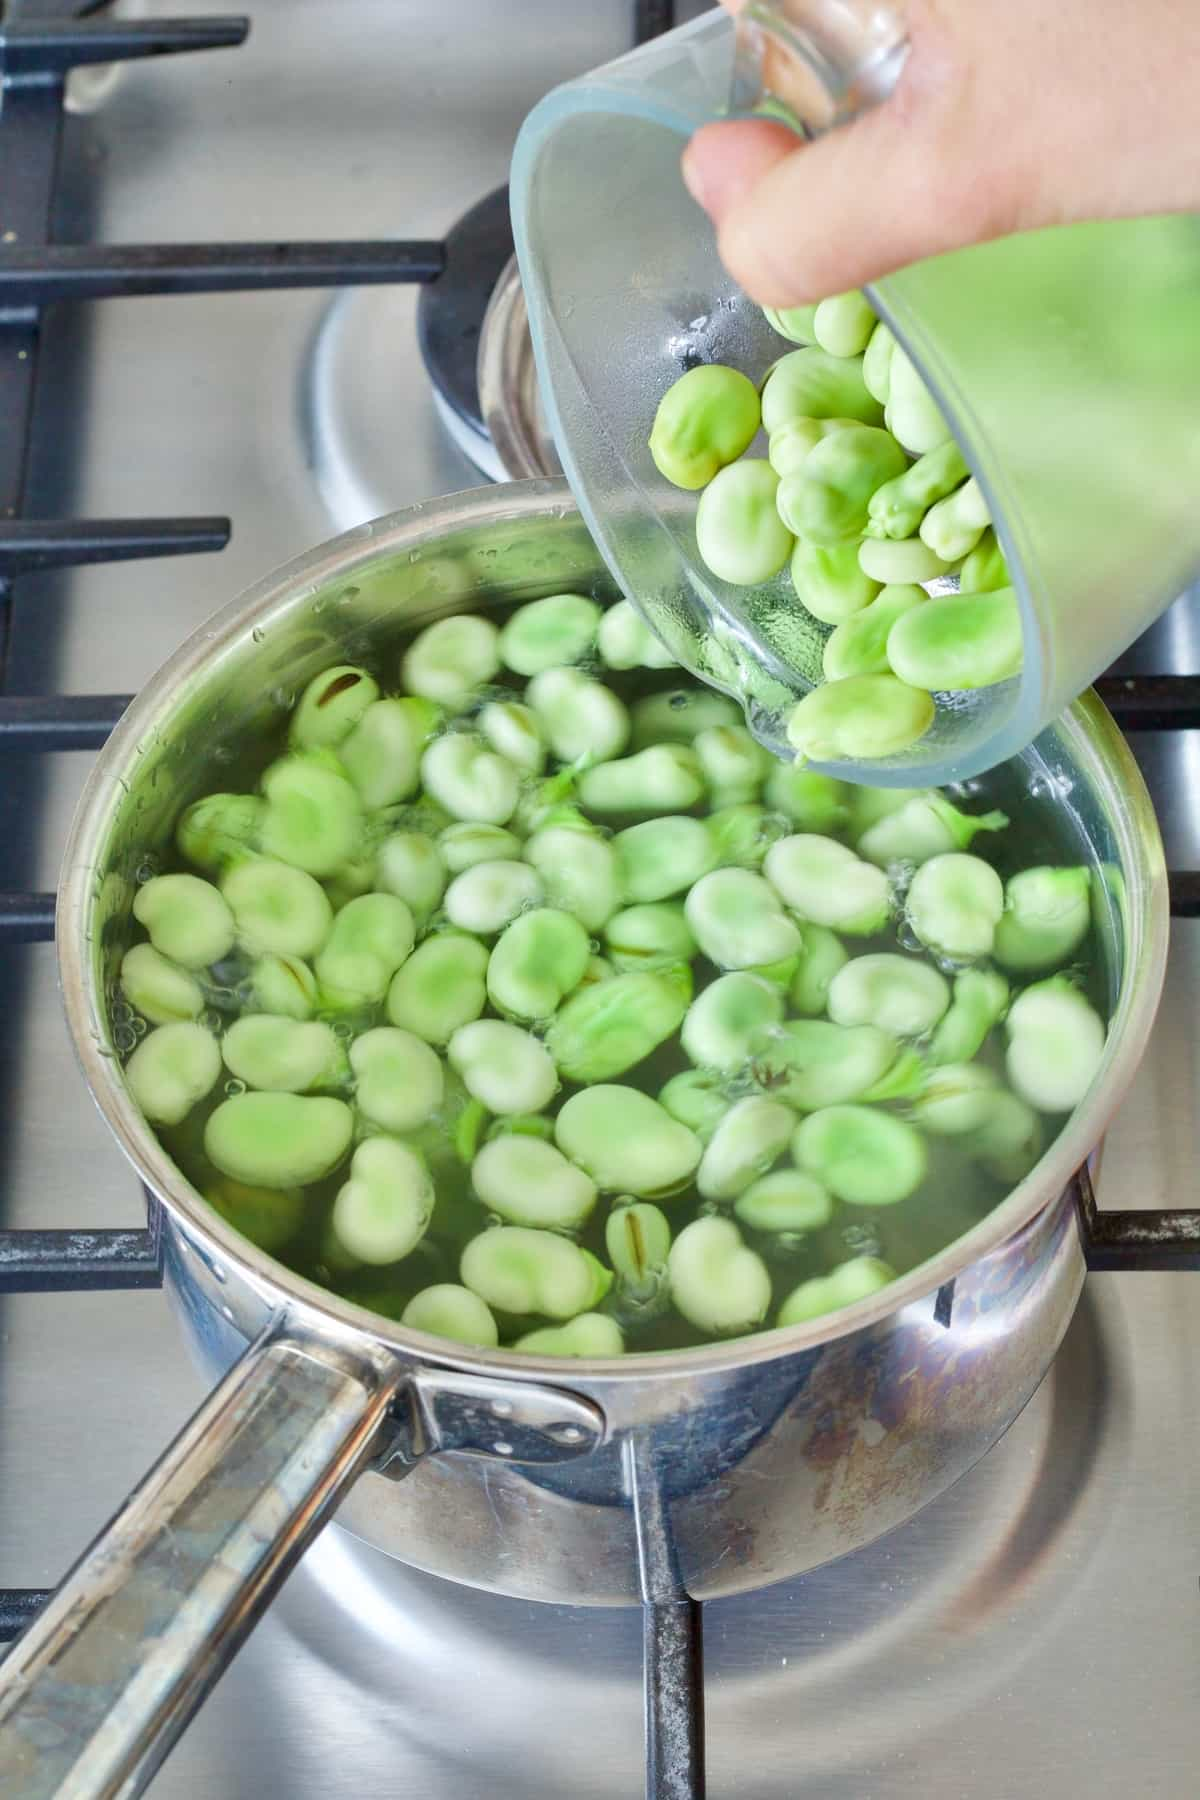 Raw broad beans being added to the pan with boiling water.